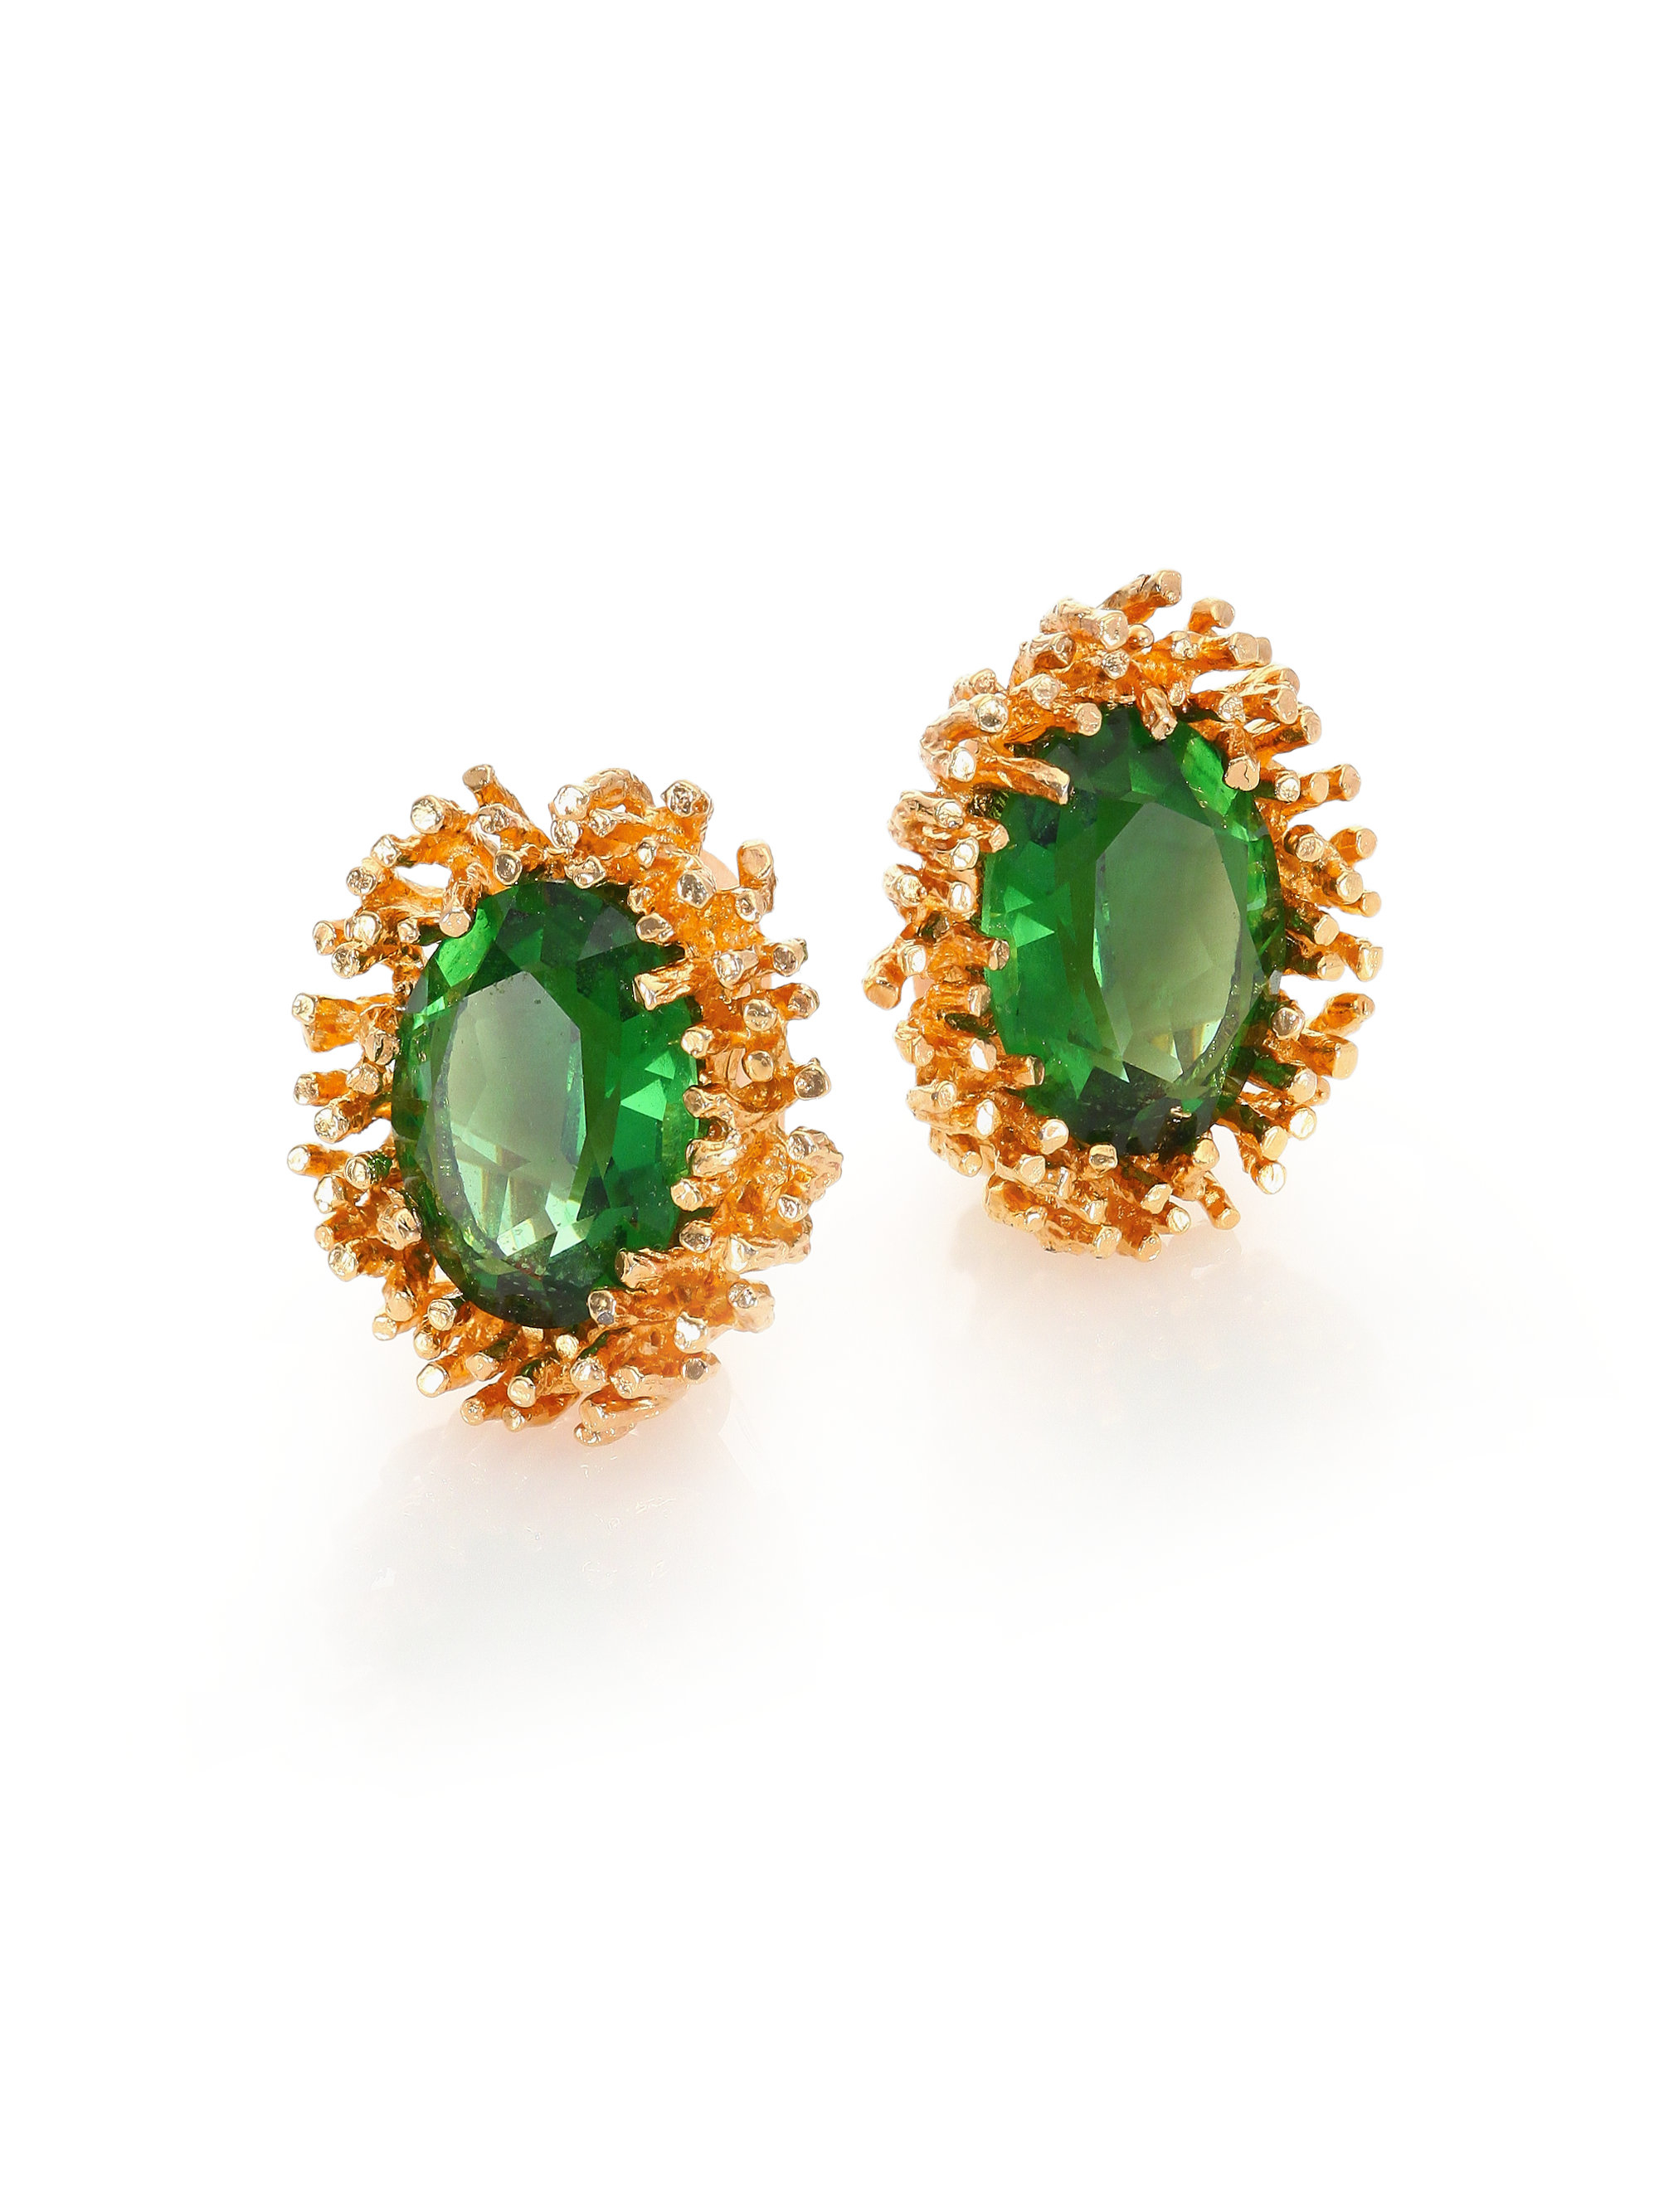 a0ab7d46a House of Lavande 1950s Vintage Faceted Clip-on Stud Earrings in ...